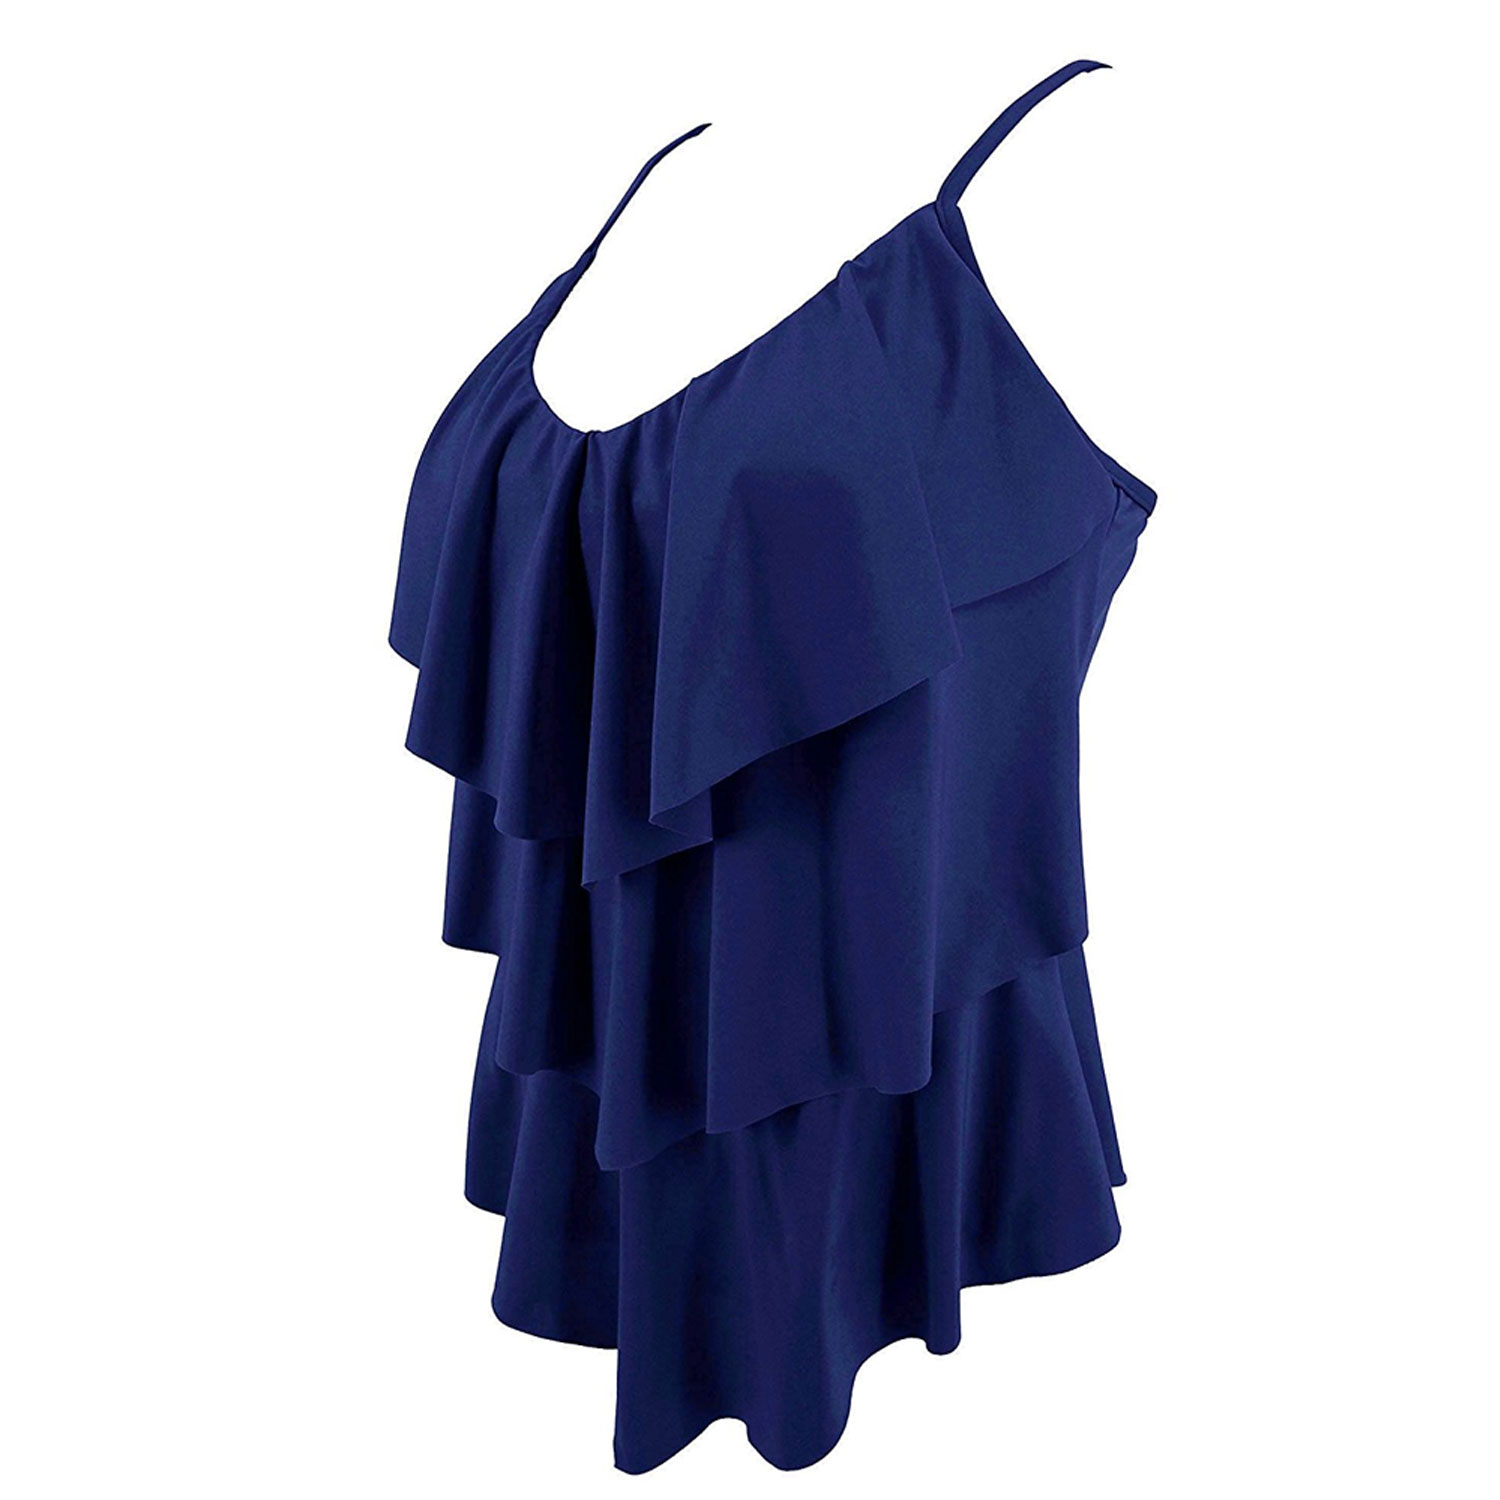 One-Piece Layered Swimsuit - Plus Size